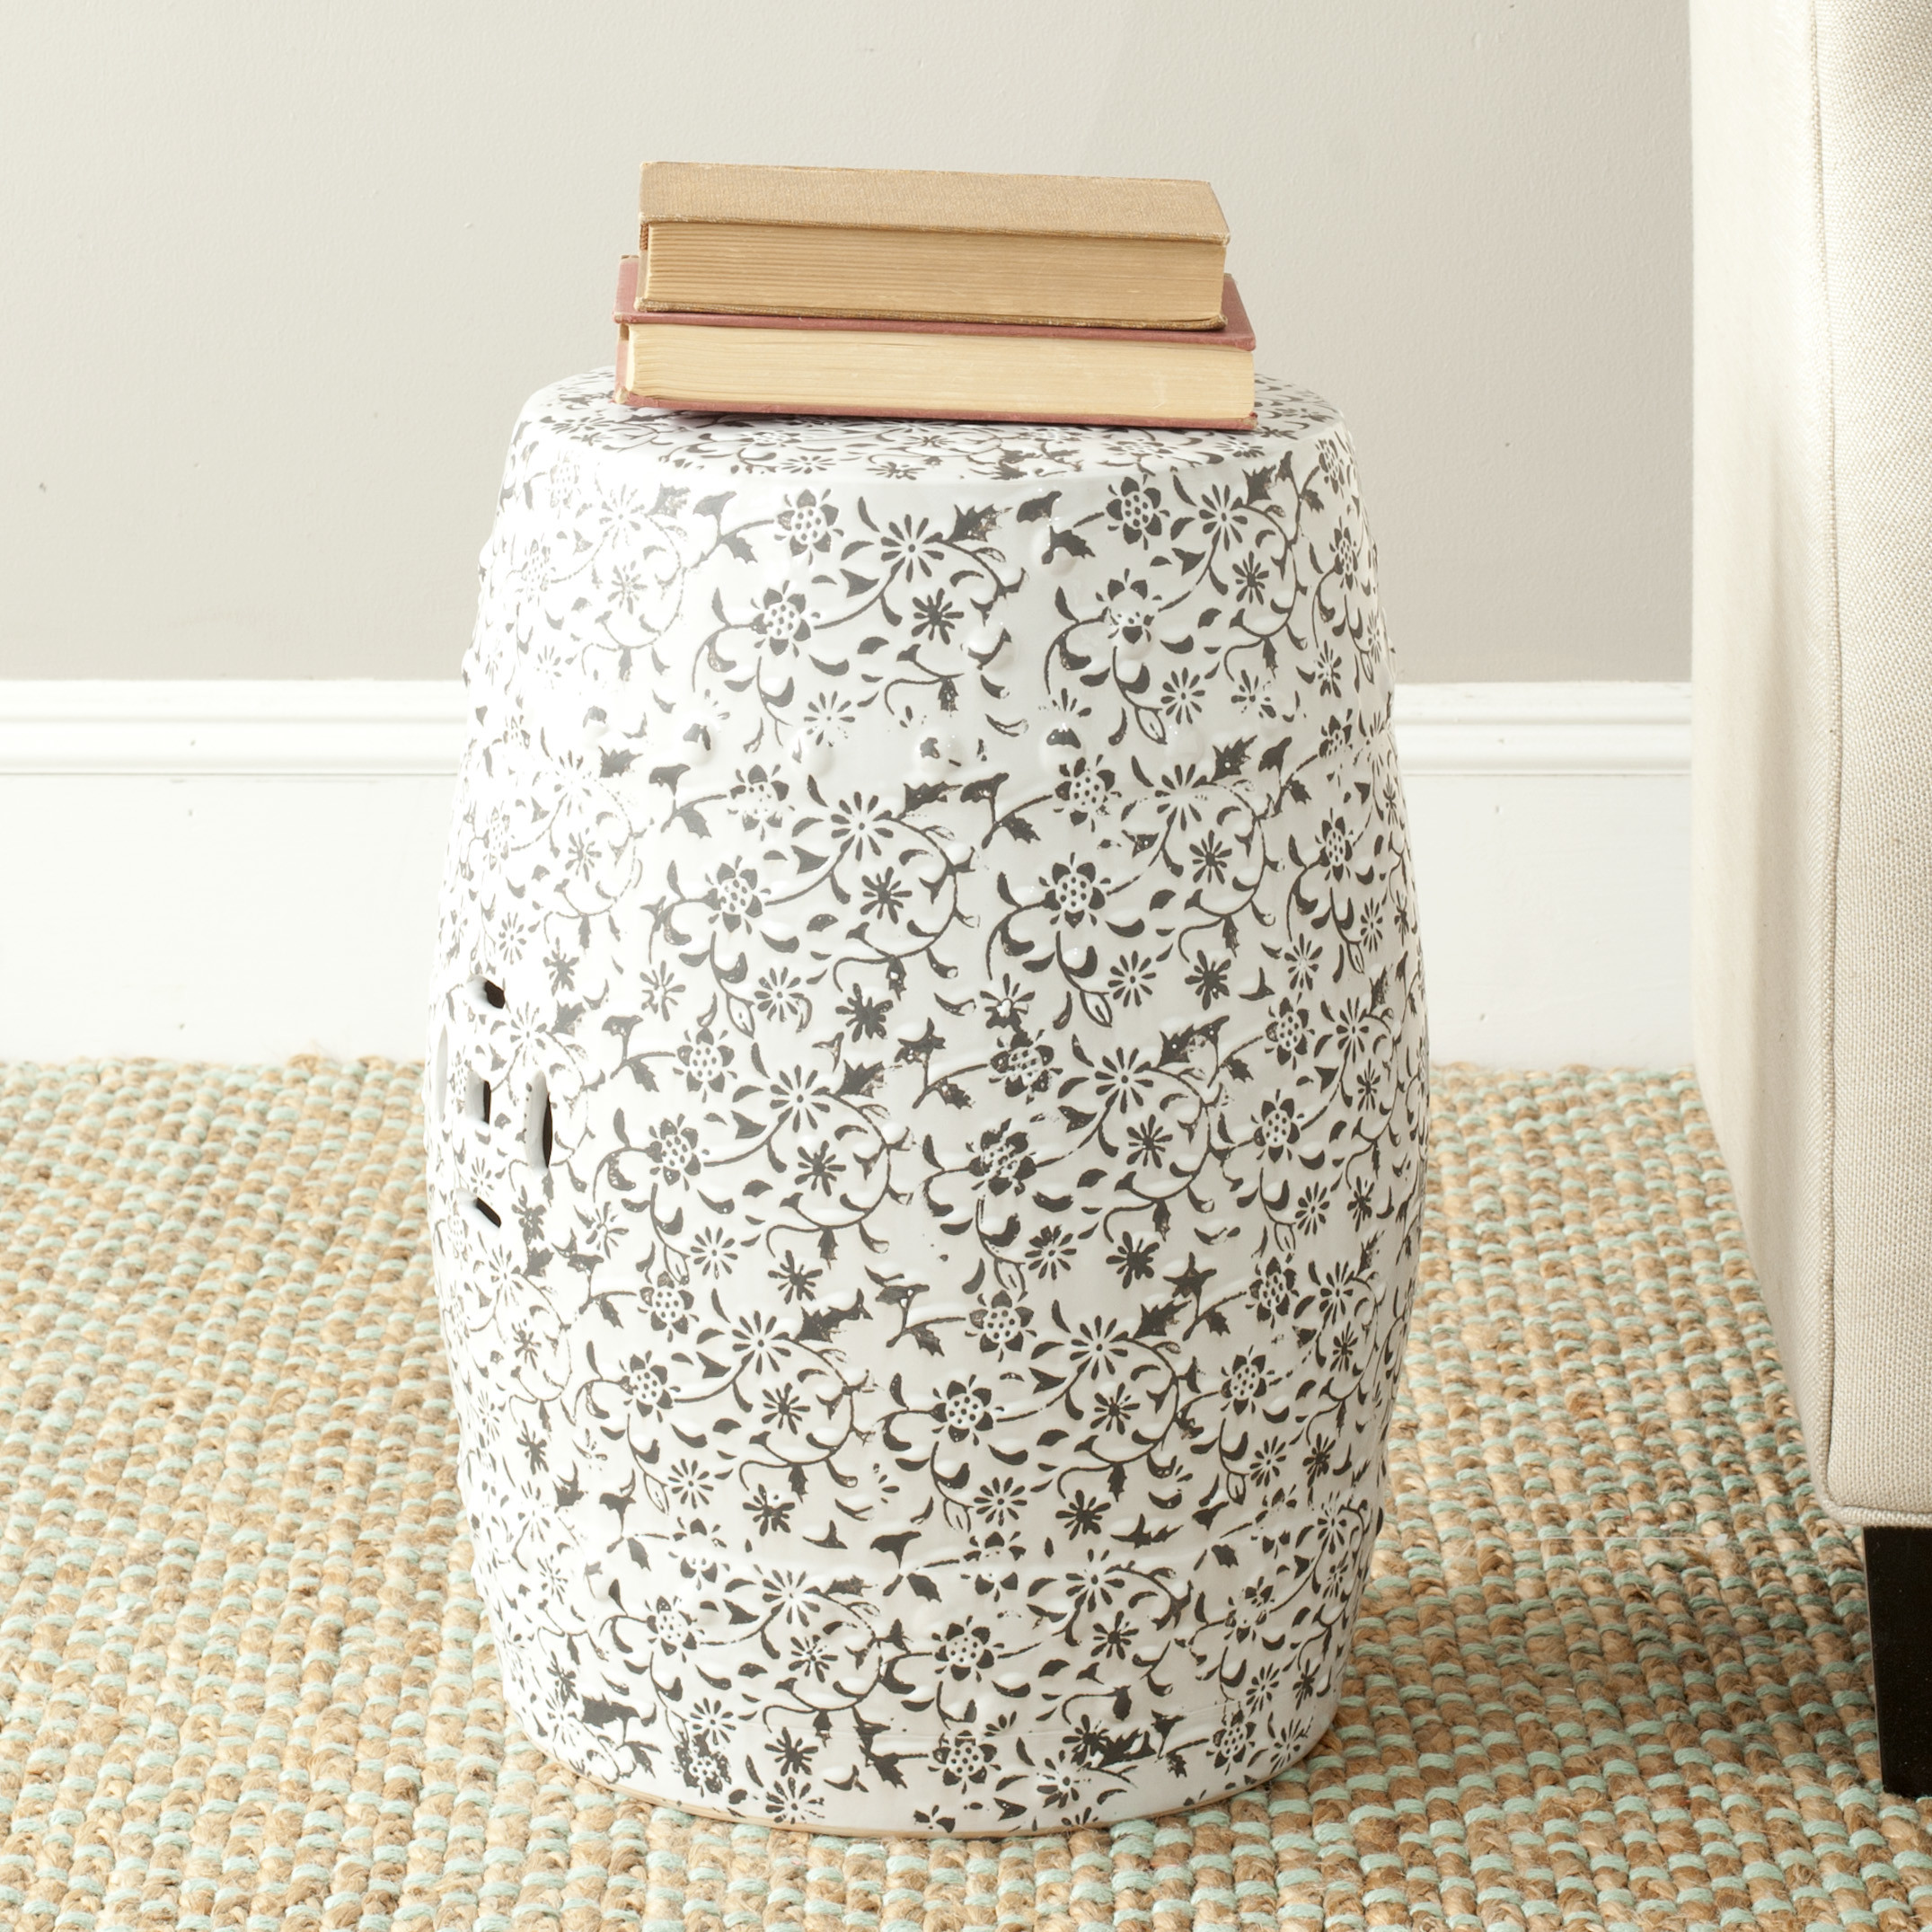 Creative garden stool for decorating interior ideas with ceramic garden stool